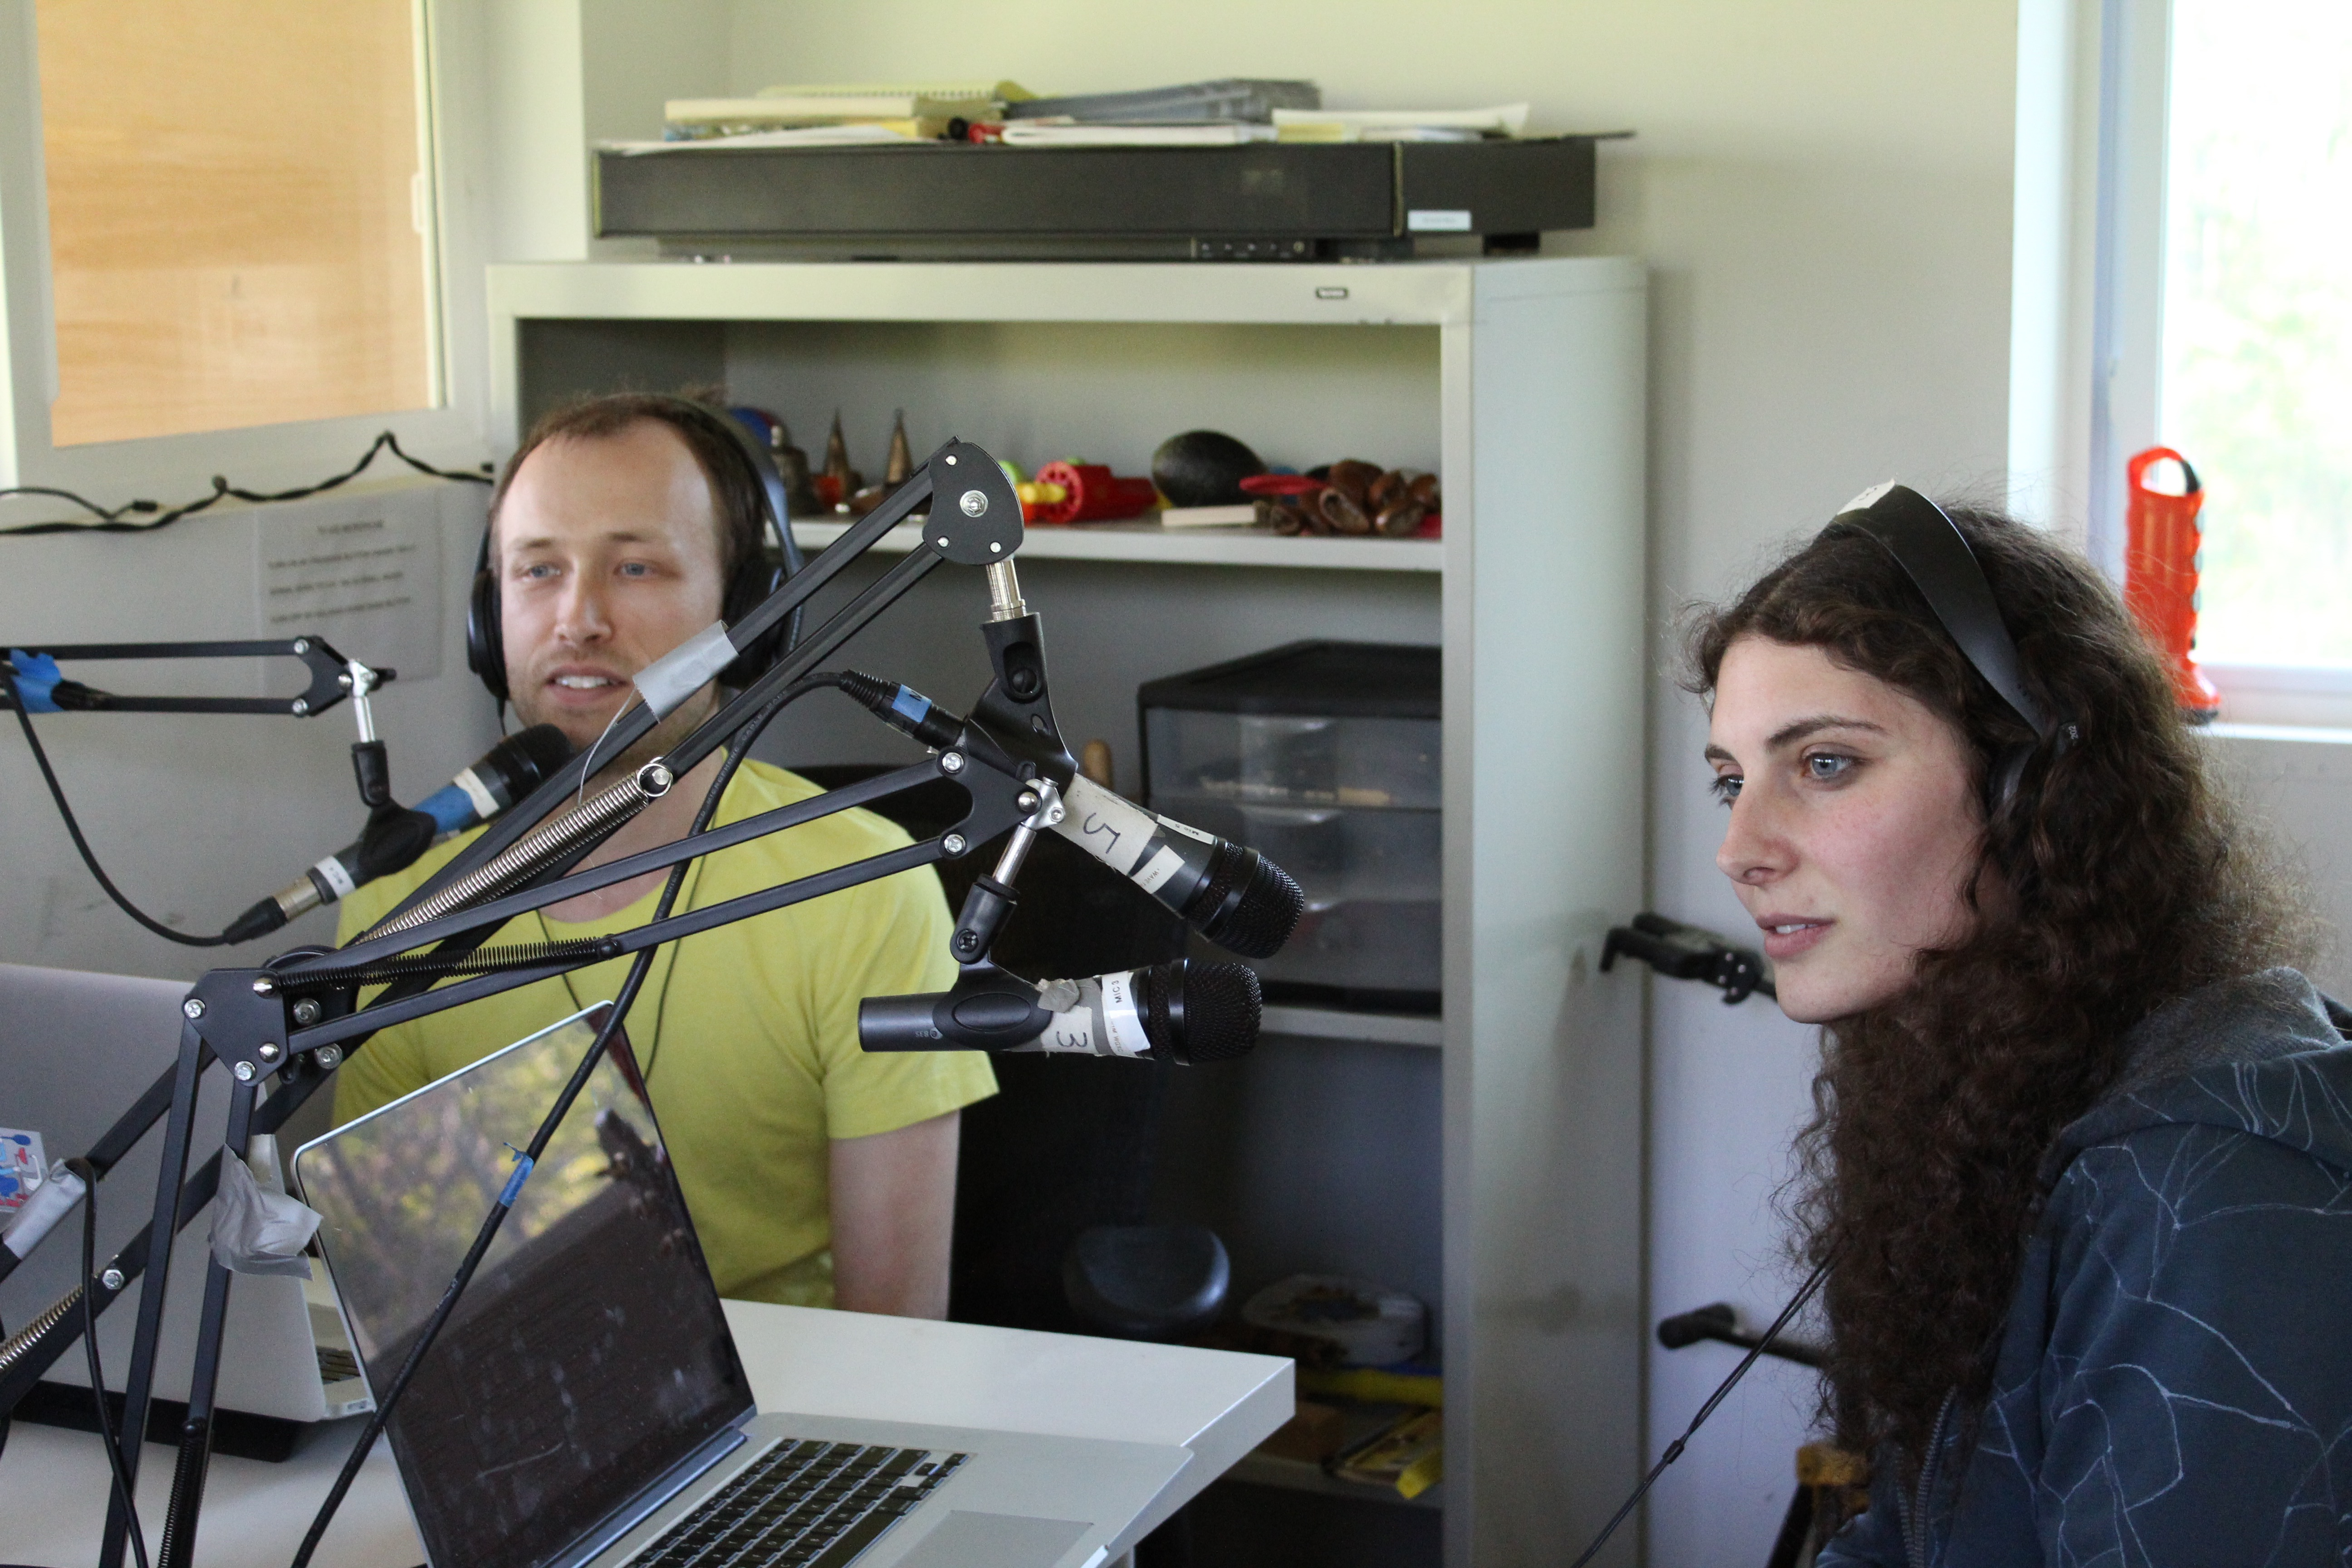 Jen Kutler and Zach Poff on the Saturday Afternoon Show.